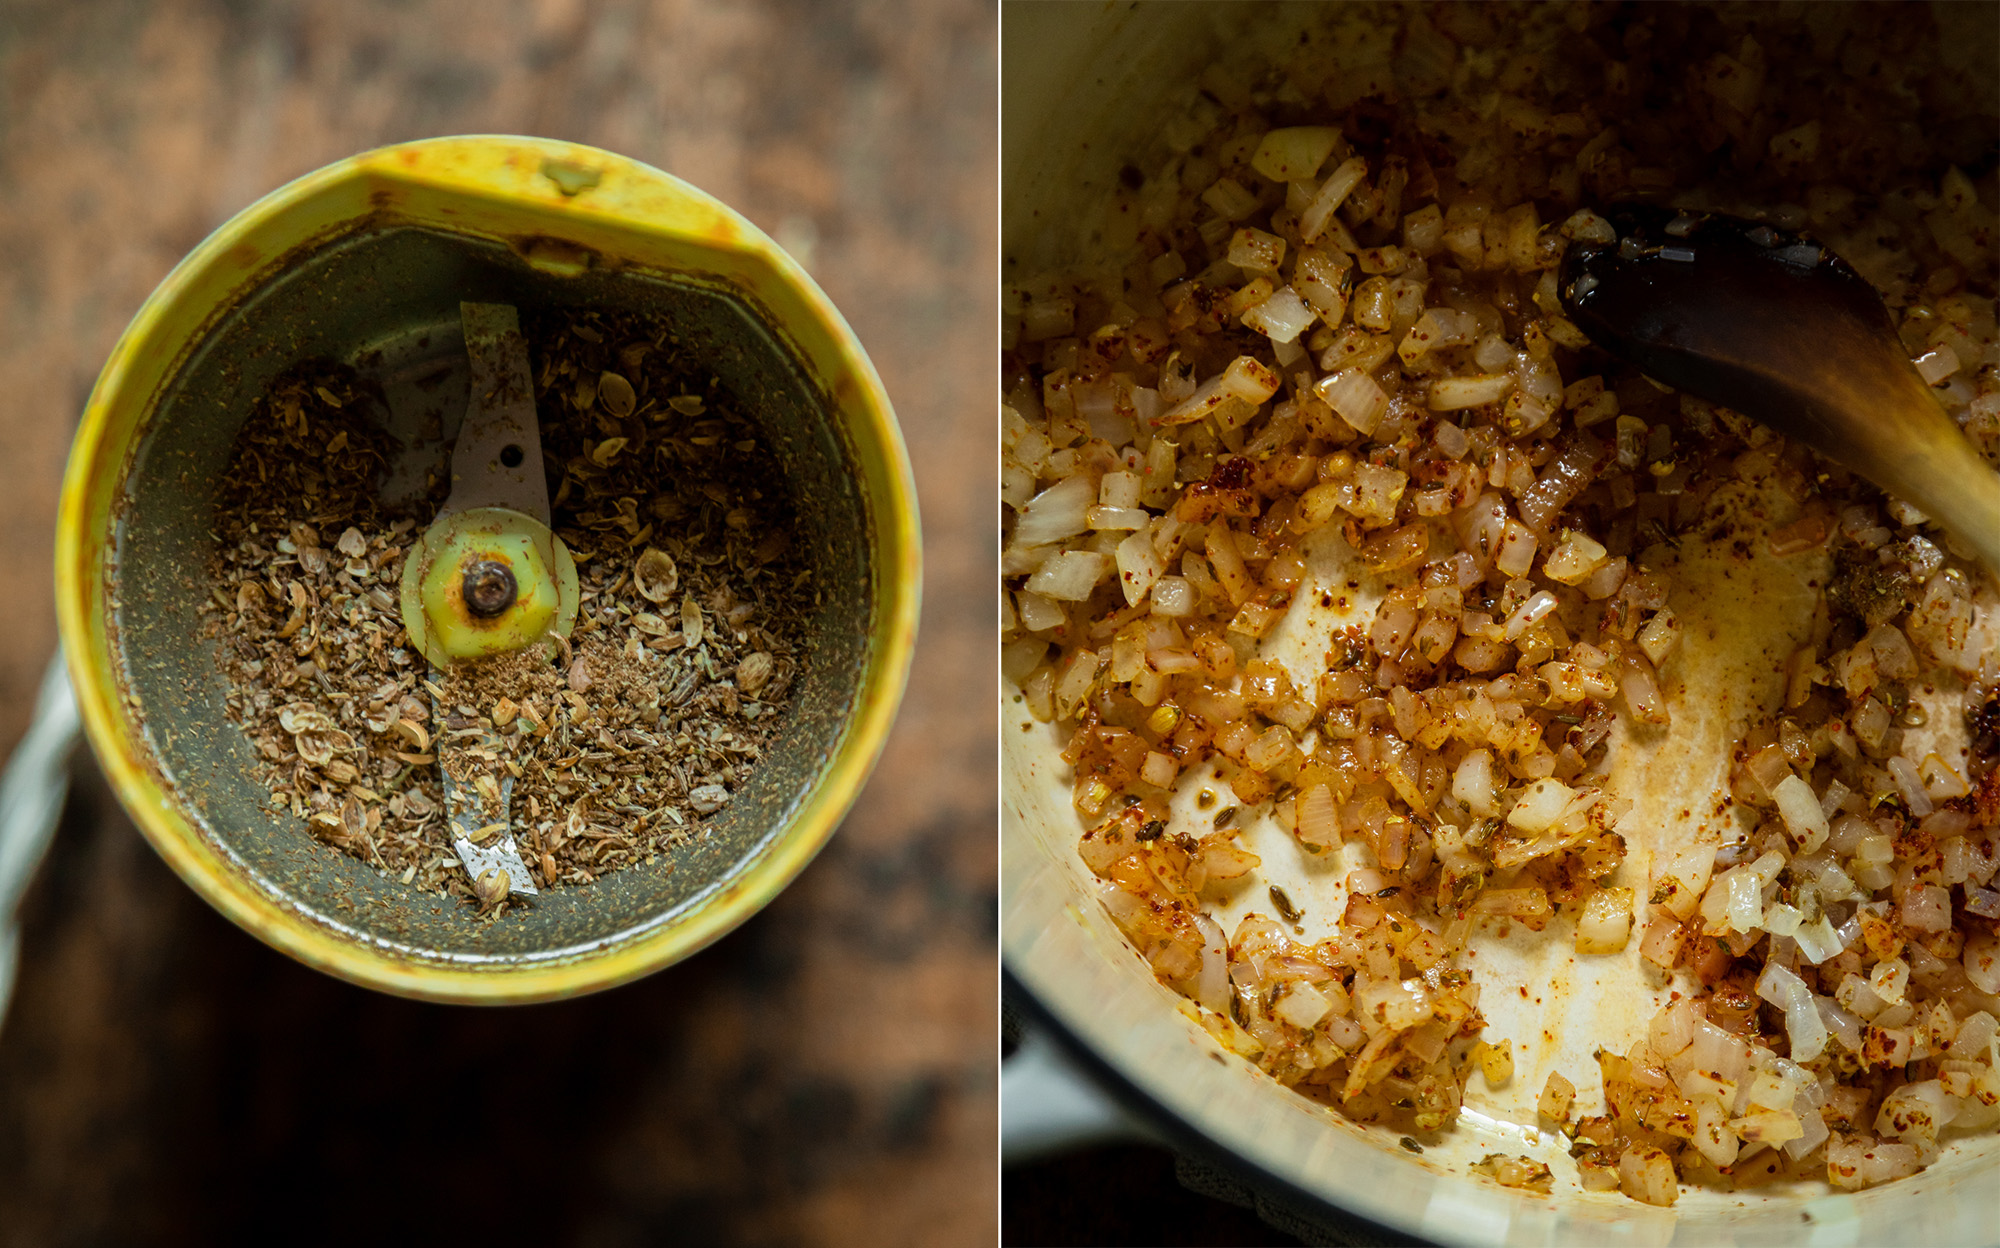 Two images show spices in a grinder and some sautéed onions with spices.